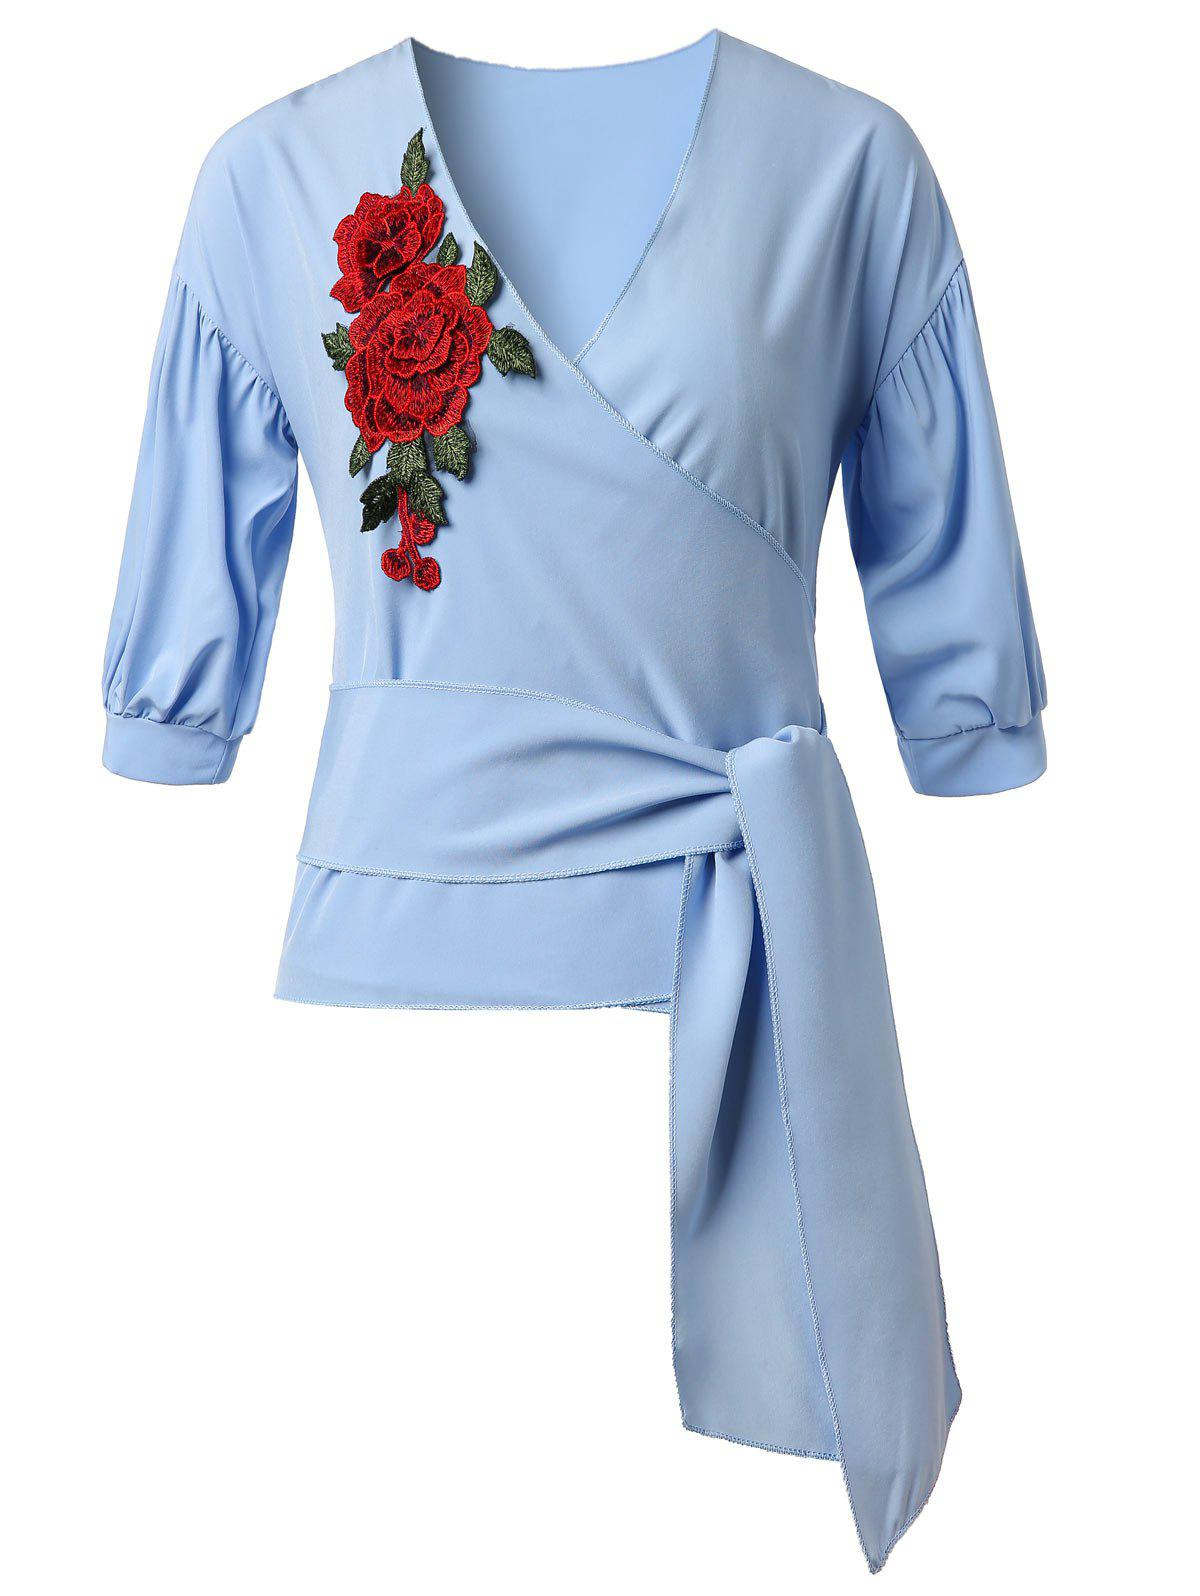 Shop Flower Embroidered Belted Surplice Top